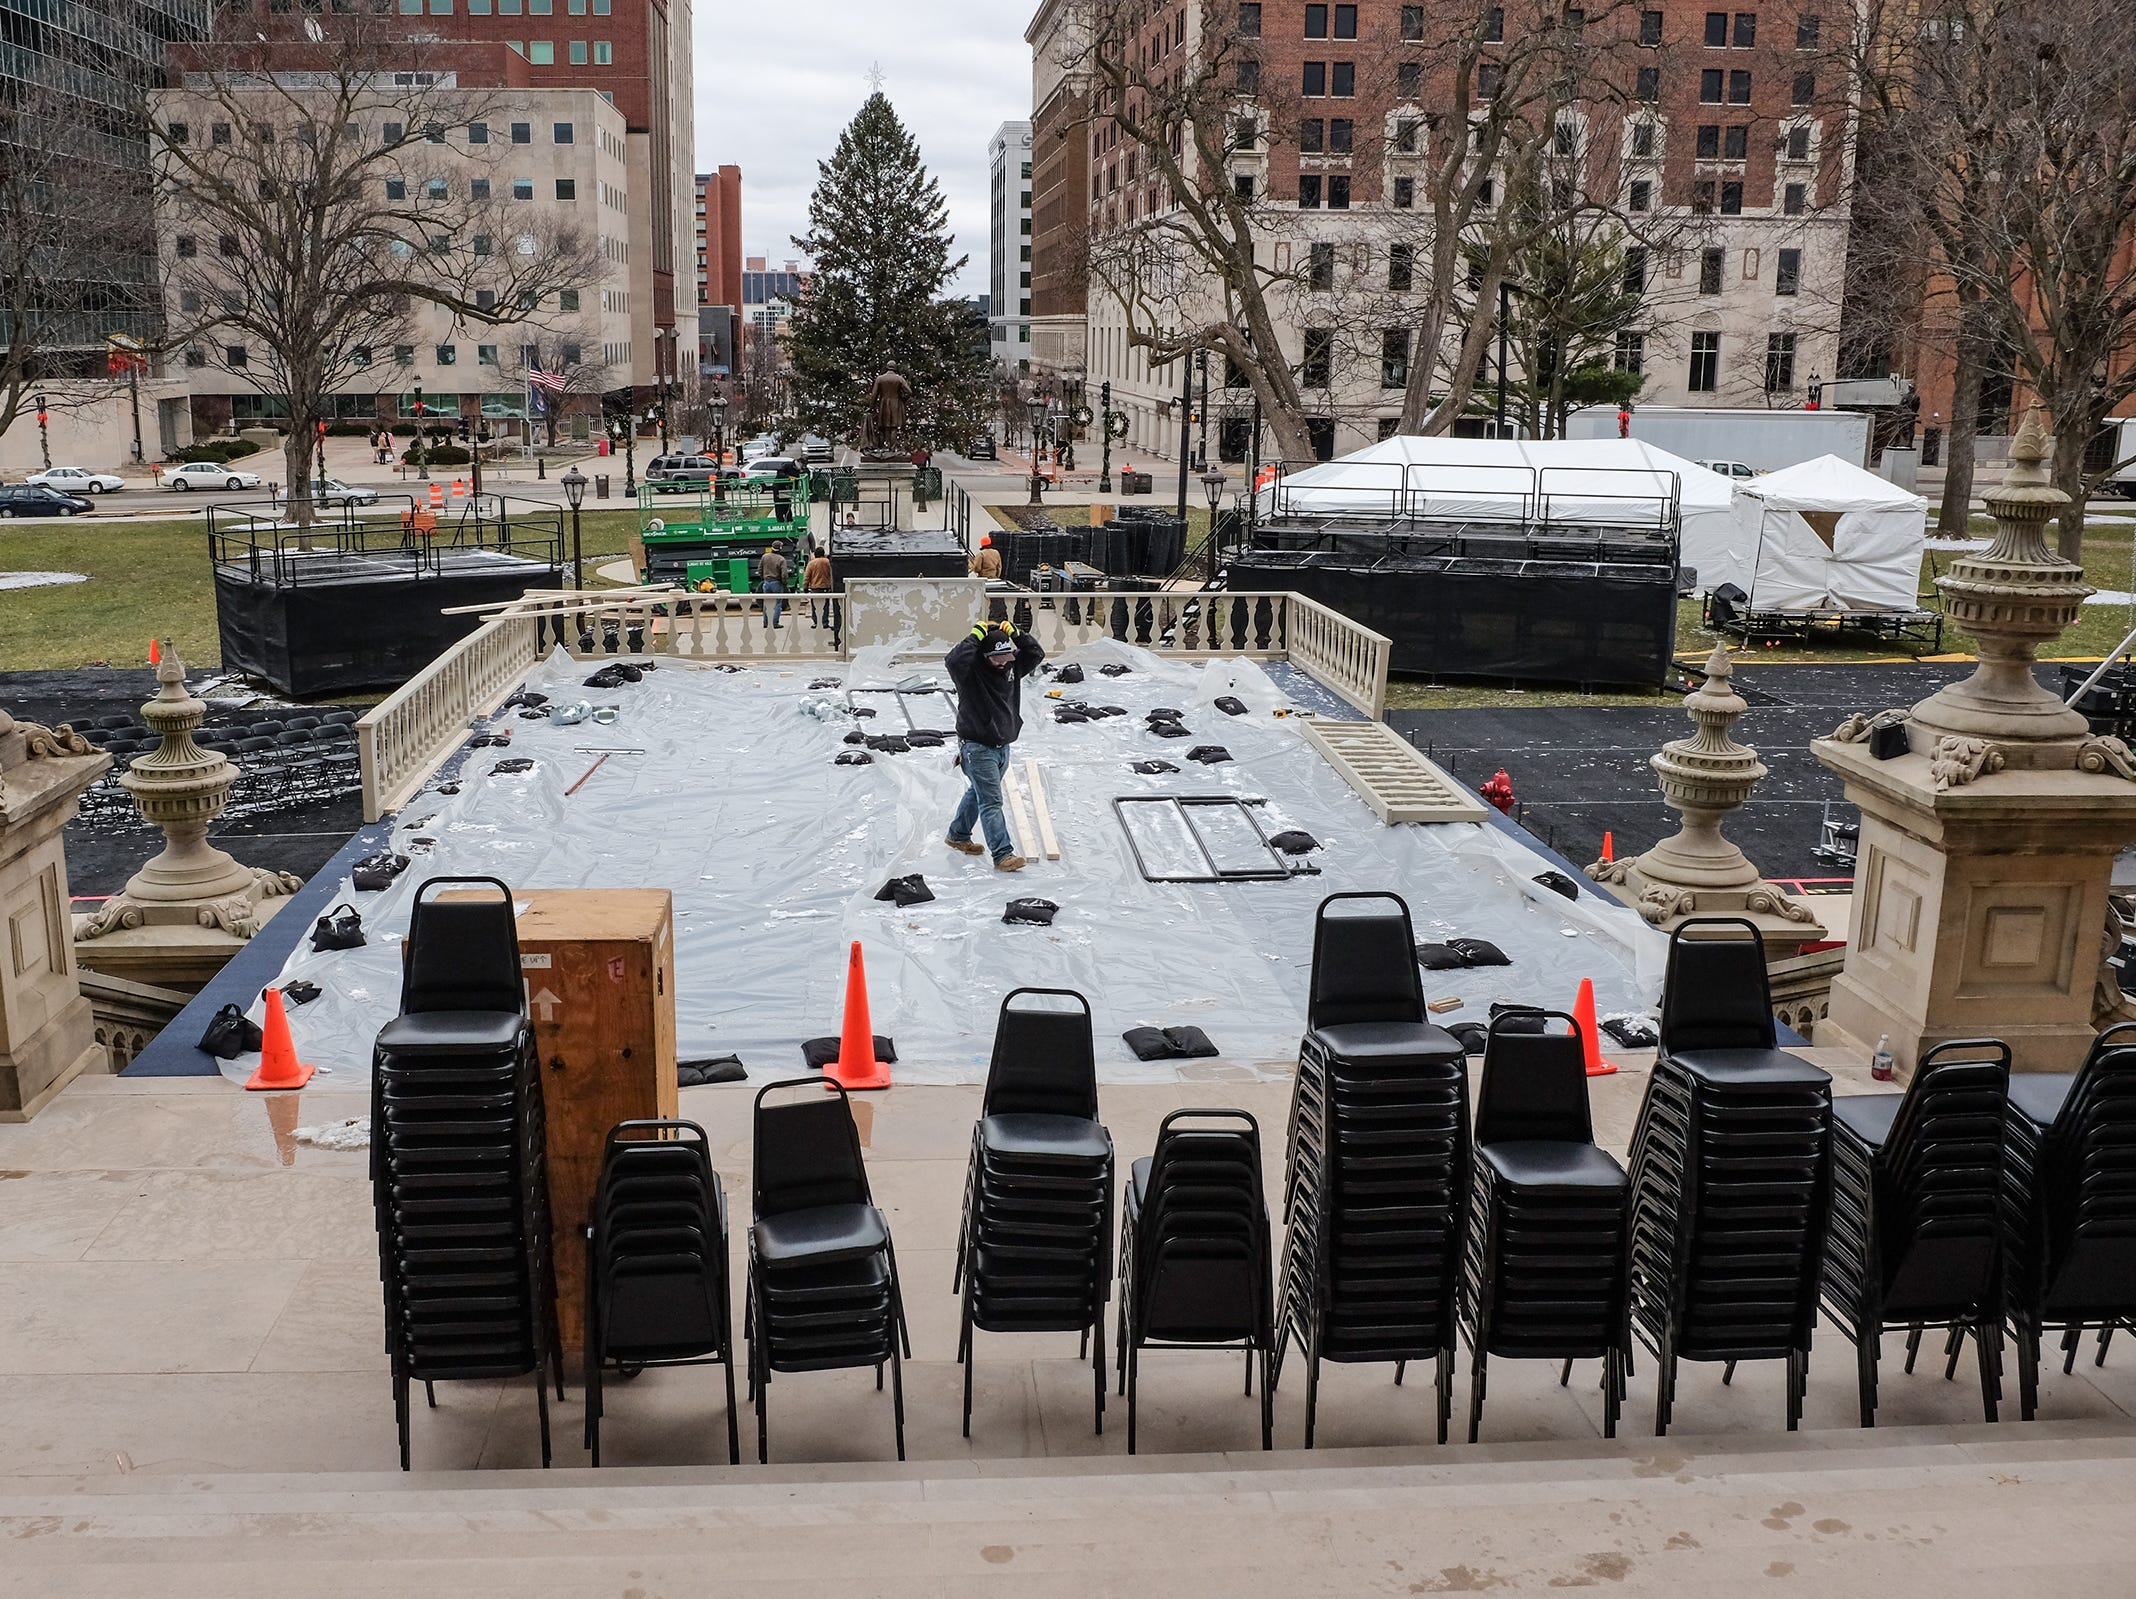 Things are starting to take shape for the inauguration of Michigan's new Governor, Gretchen Whitmer, as workmen begin building the stage over the steps of the state Capitol Saturday, Dec. 29, 2018.